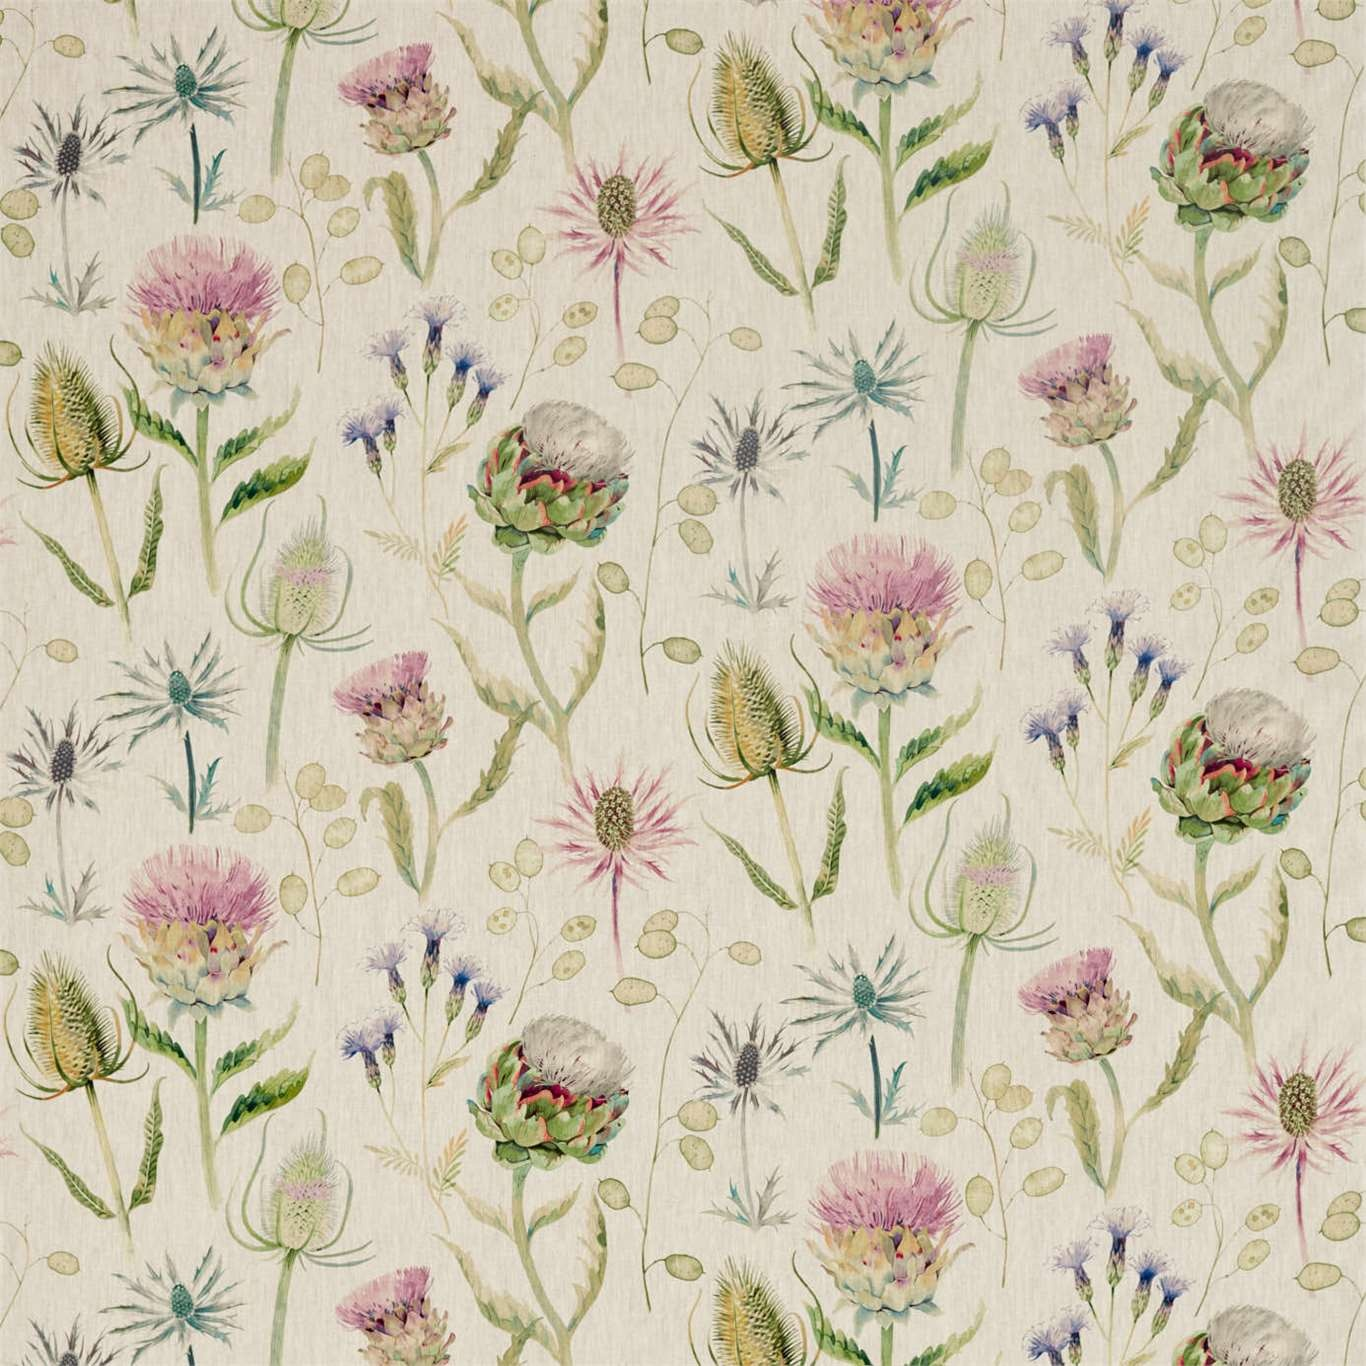 Image of Sanderson Thistle Garden Linen Thistle/Fig Curtain Fabric 226423